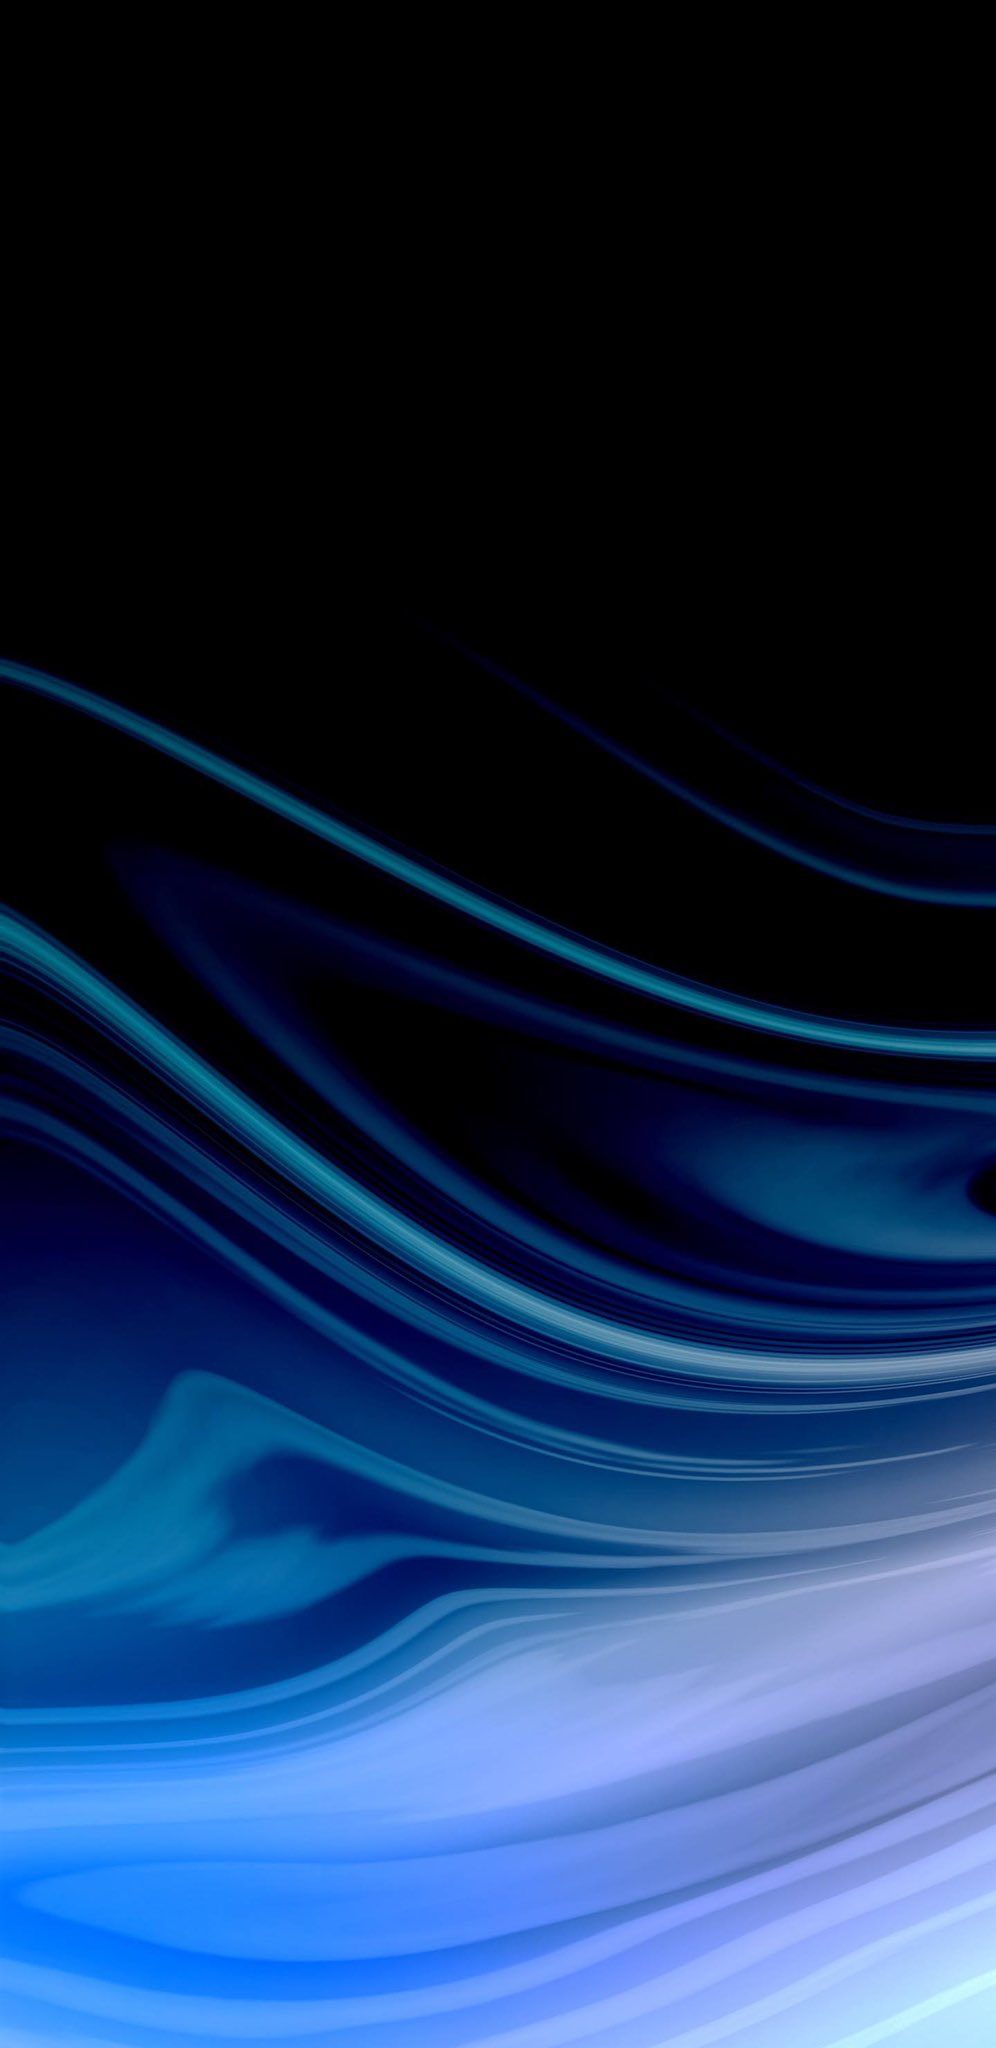 Pacific Blue iphone wallpaper idownloadblog smartechdaily abstract 2